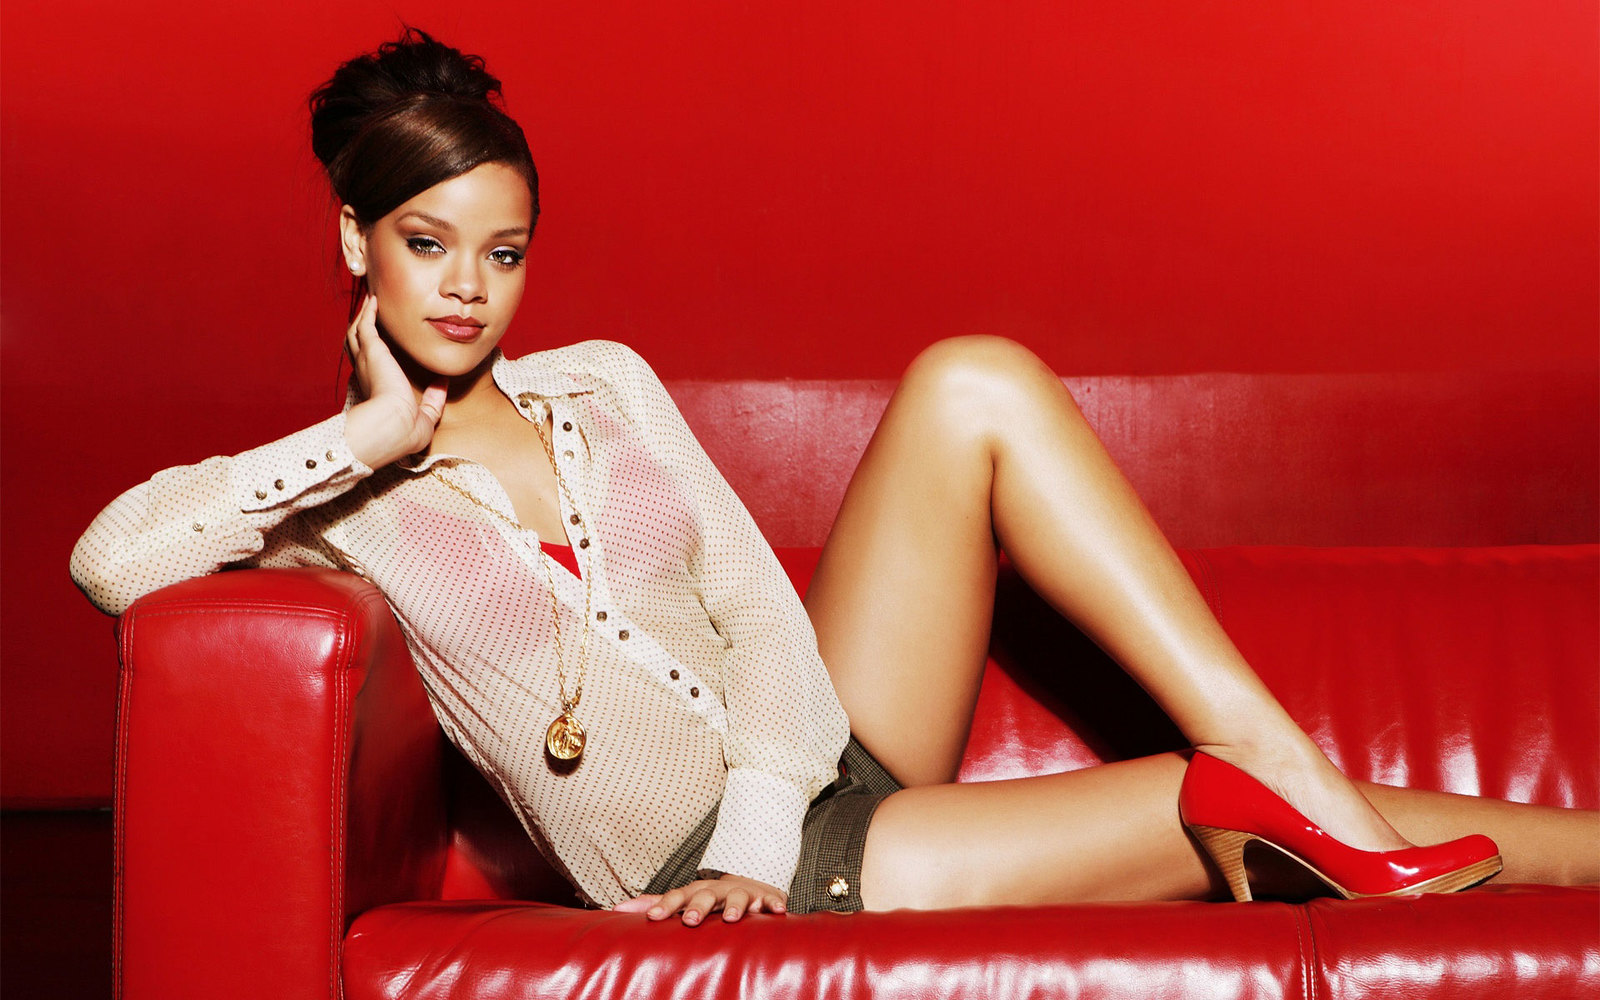 12 facts you didn't know about Rihanna